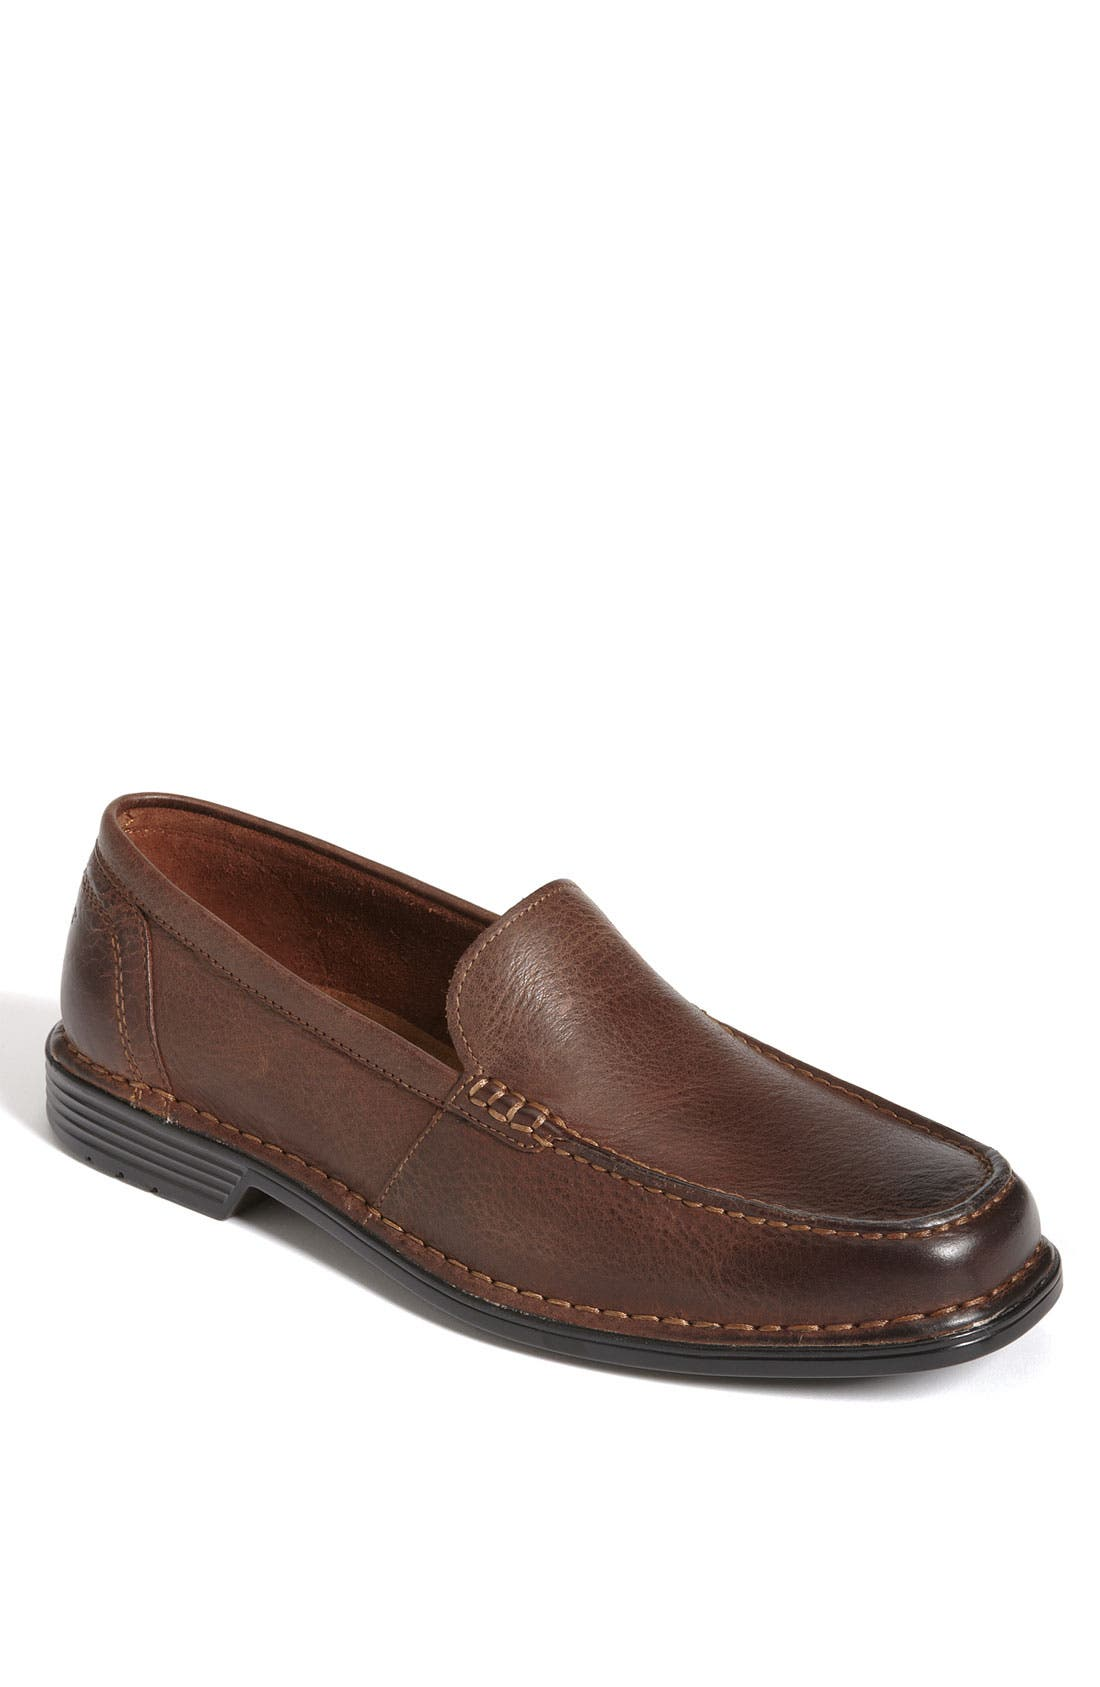 Alternate Image 1 Selected - Rockport 'Washington Square' Venetian Loafer (Online Only)